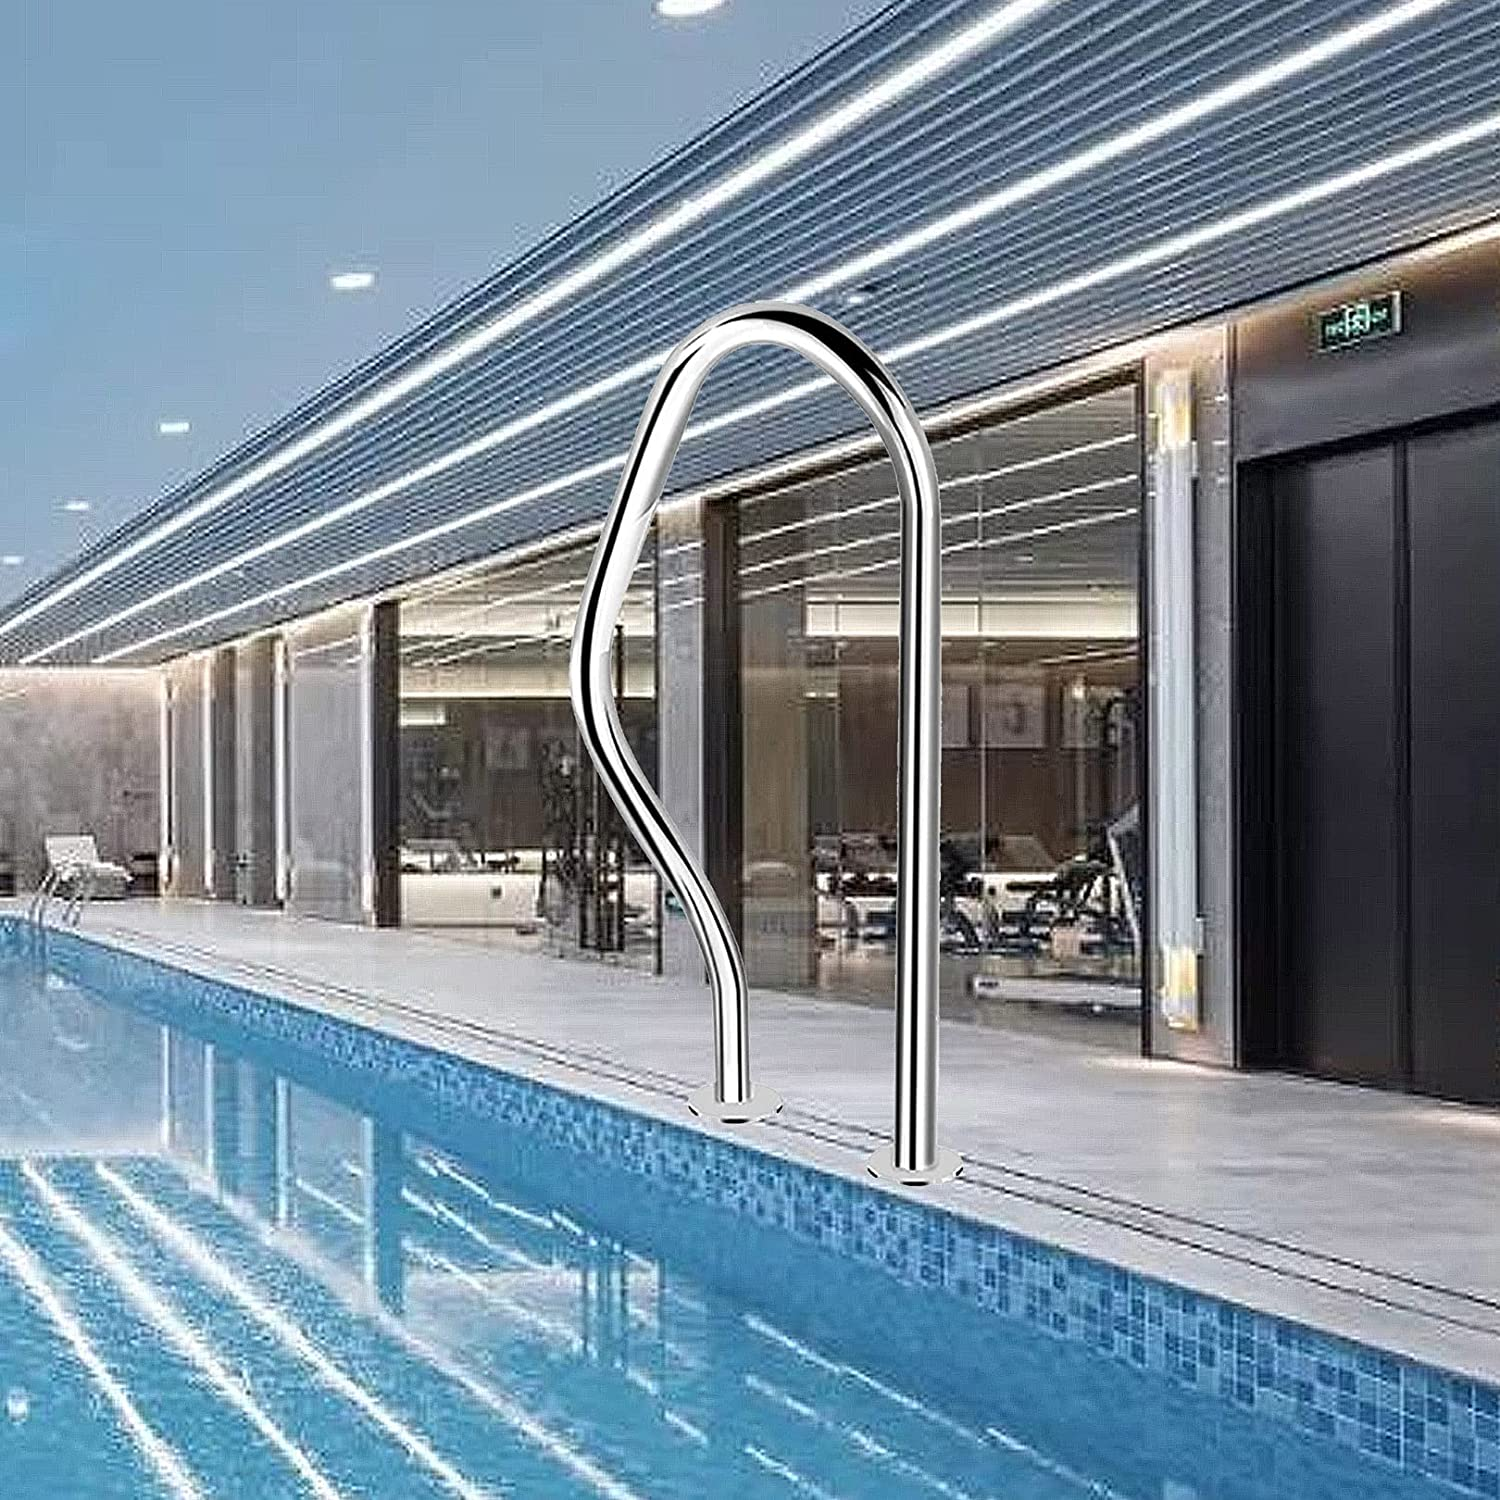 WUDAXIAN Safety Ranking TOP13 1PCS Swimming Pool In Handrails 31x18 Max 81% OFF Rail